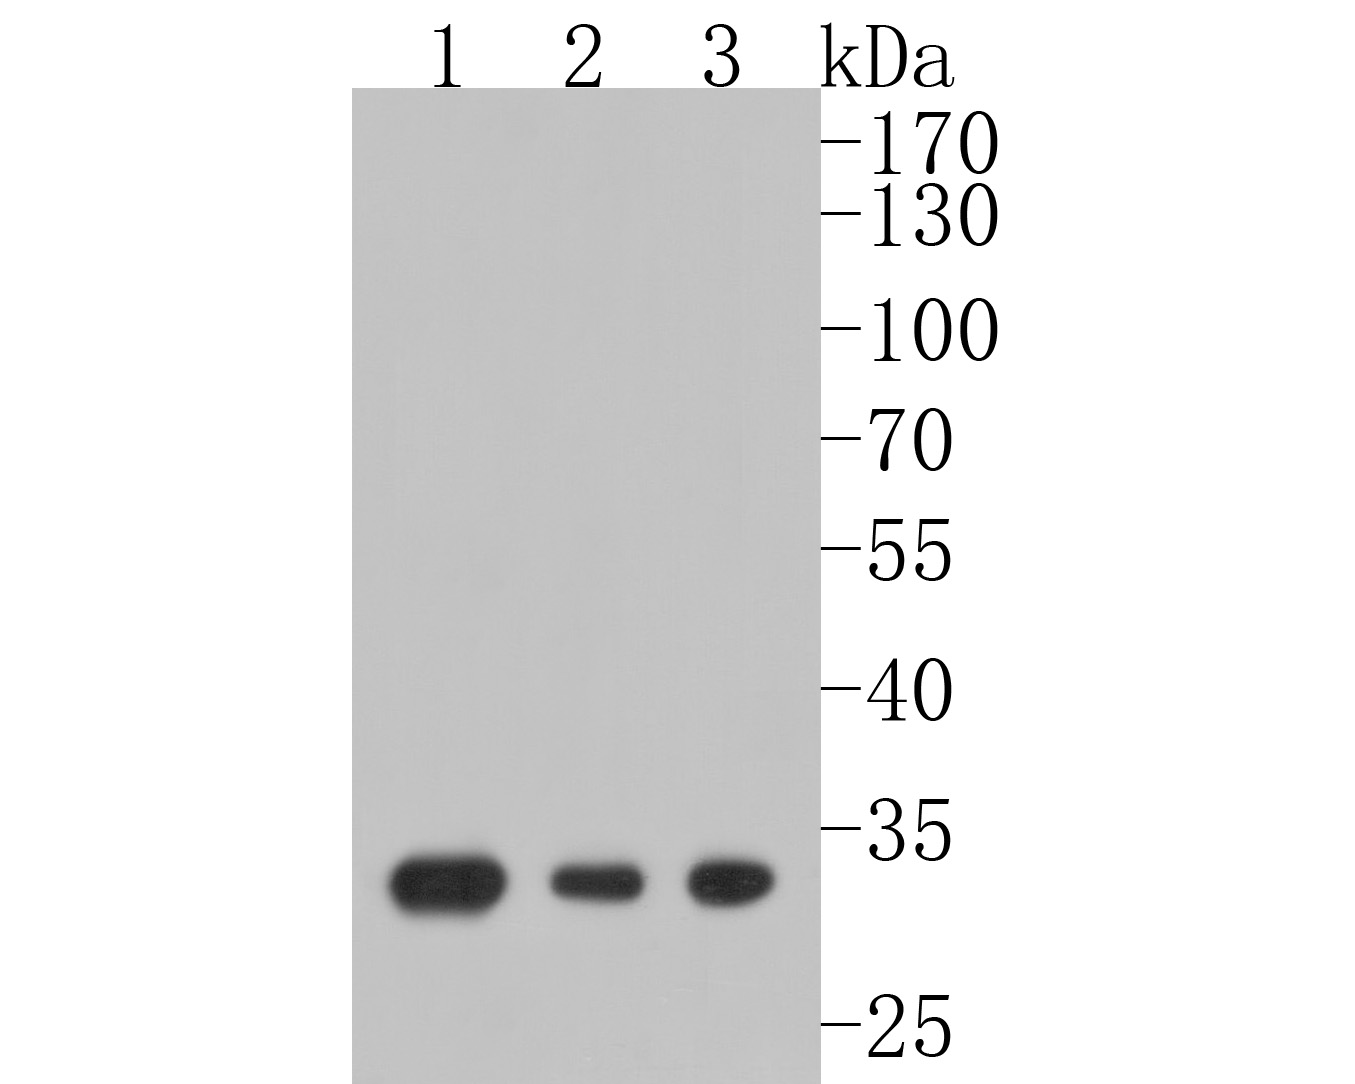 Western blot analysis of Galectin 3 on different lysates using anti-Galectin 3 antibody at 1/1,000 dilution.<br /> Positive control: <br /> Lane 1: Hela <br /> Lane 2: NIH/3T3 <br /> Lane 3: THP-1